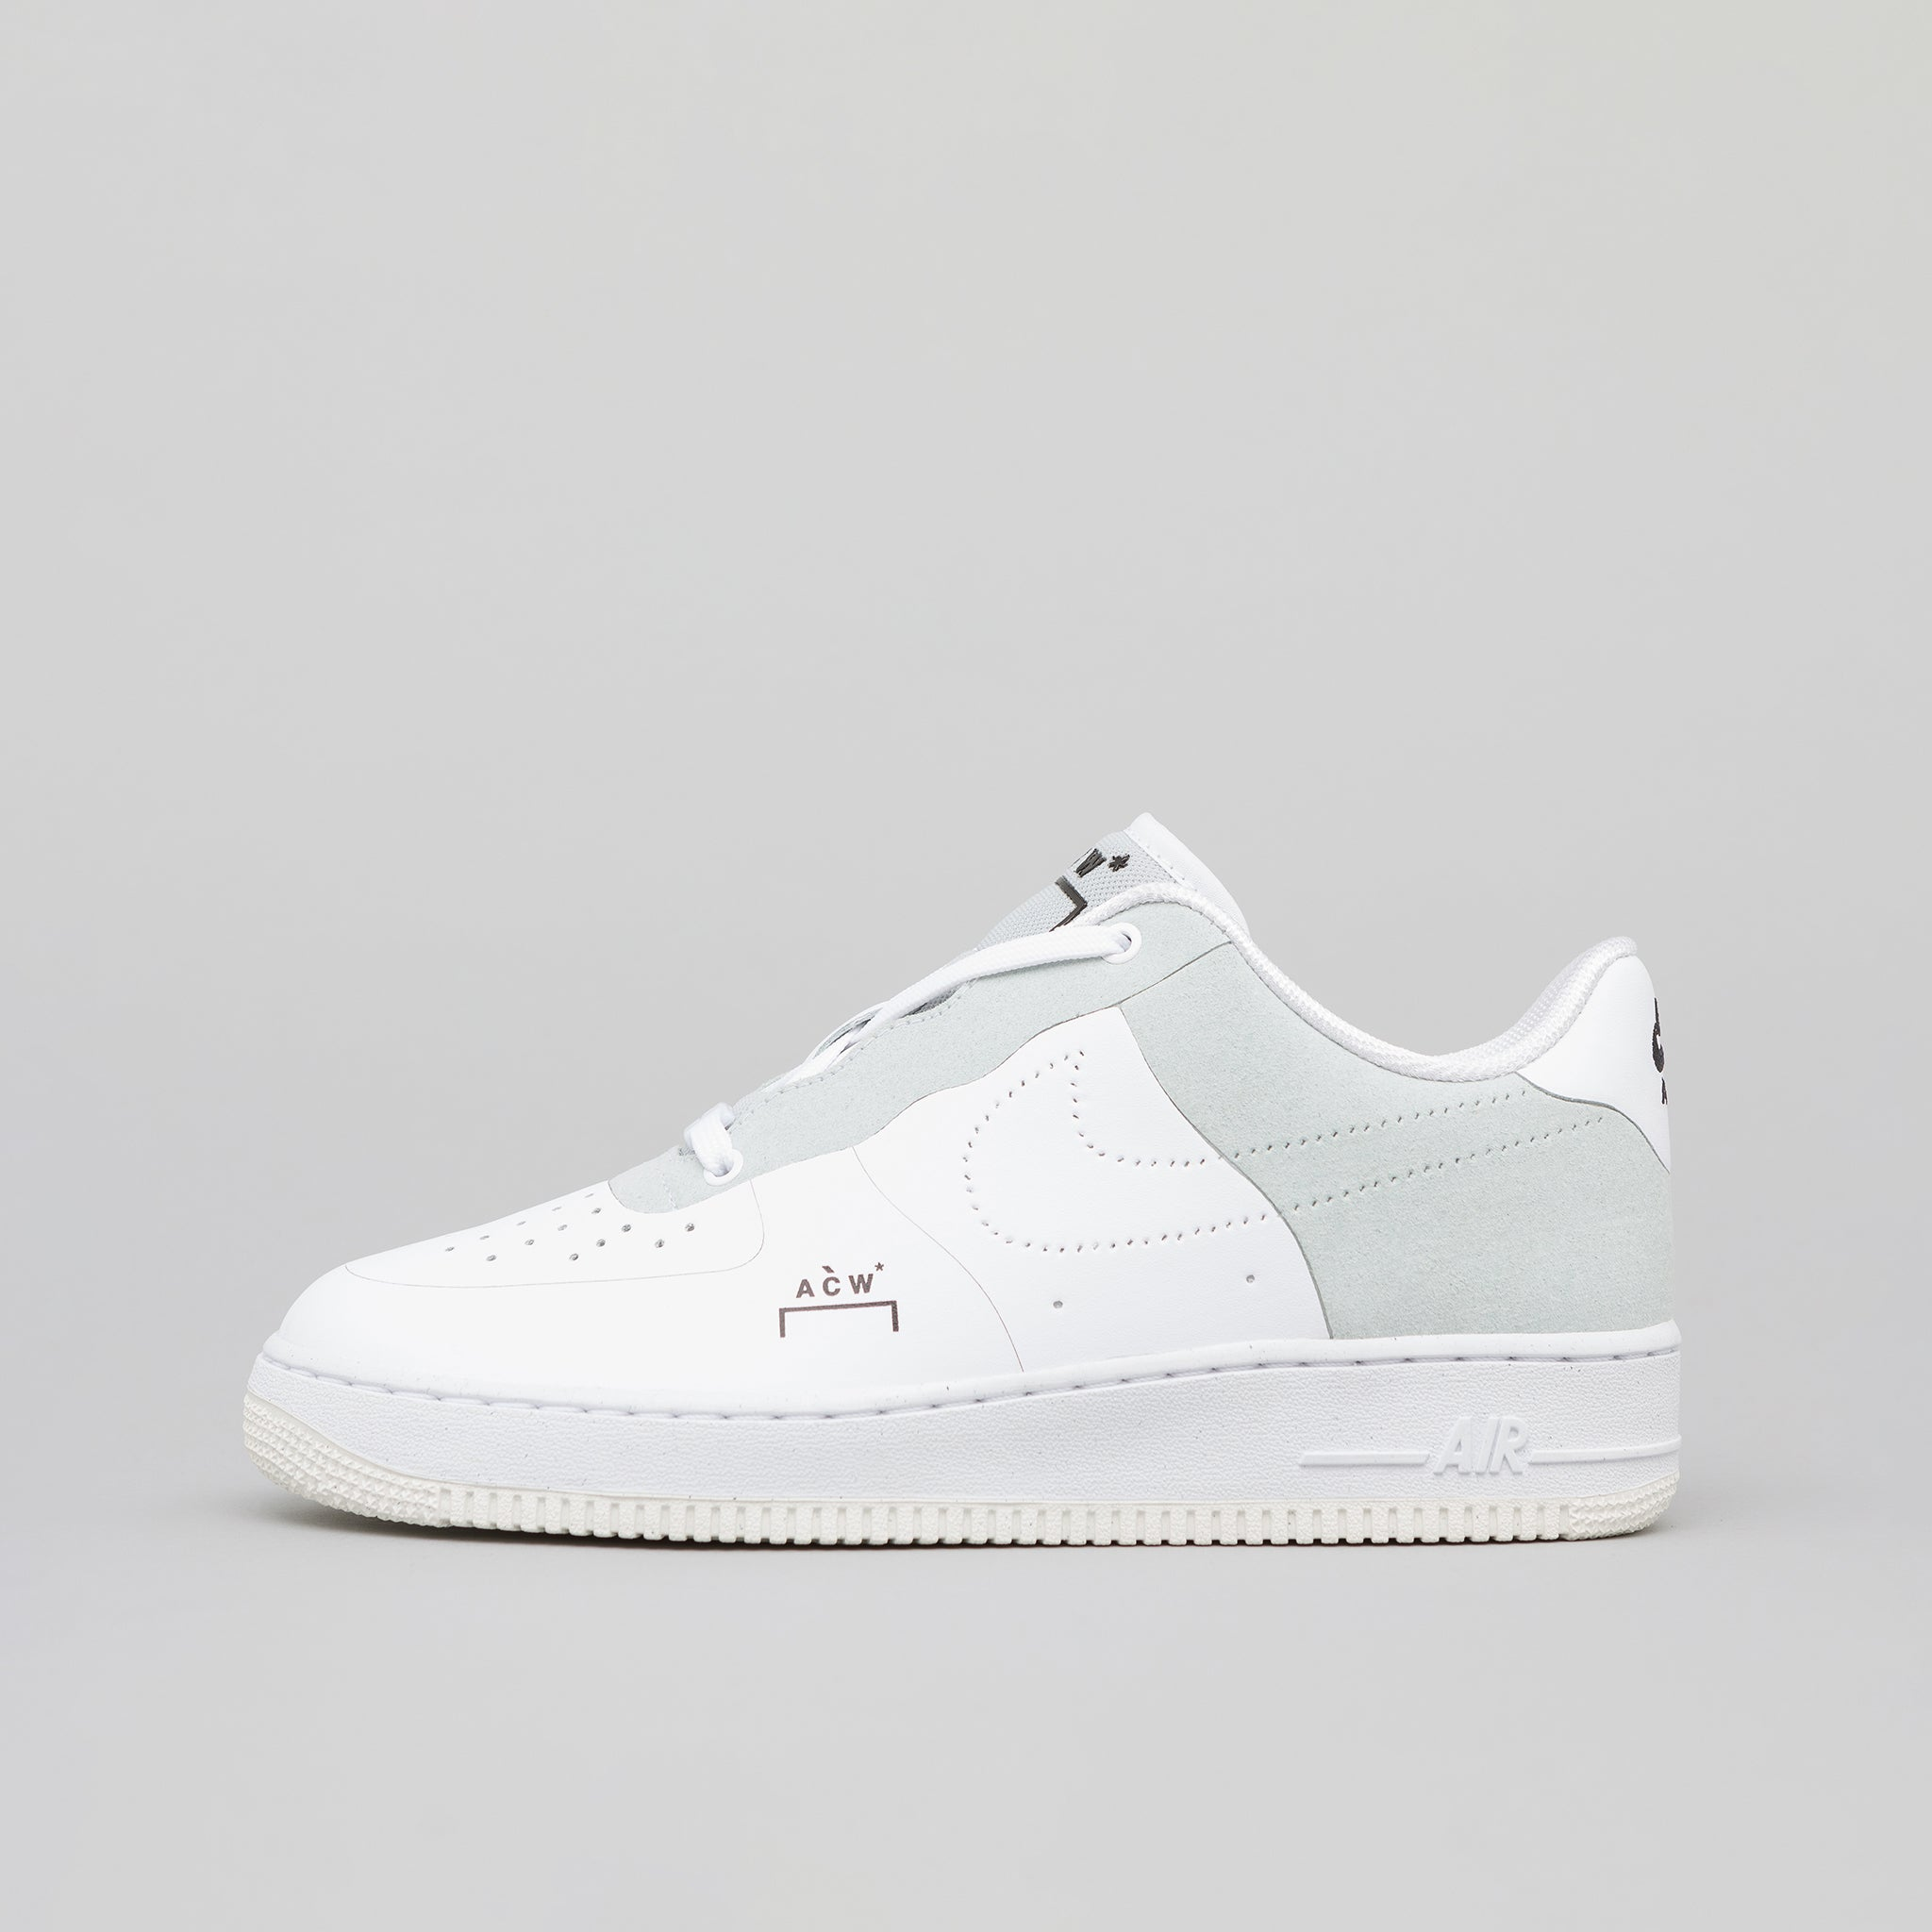 info for 3a28d ee387 x A-COLD-WALL Air Force 1 07 in White. Nike